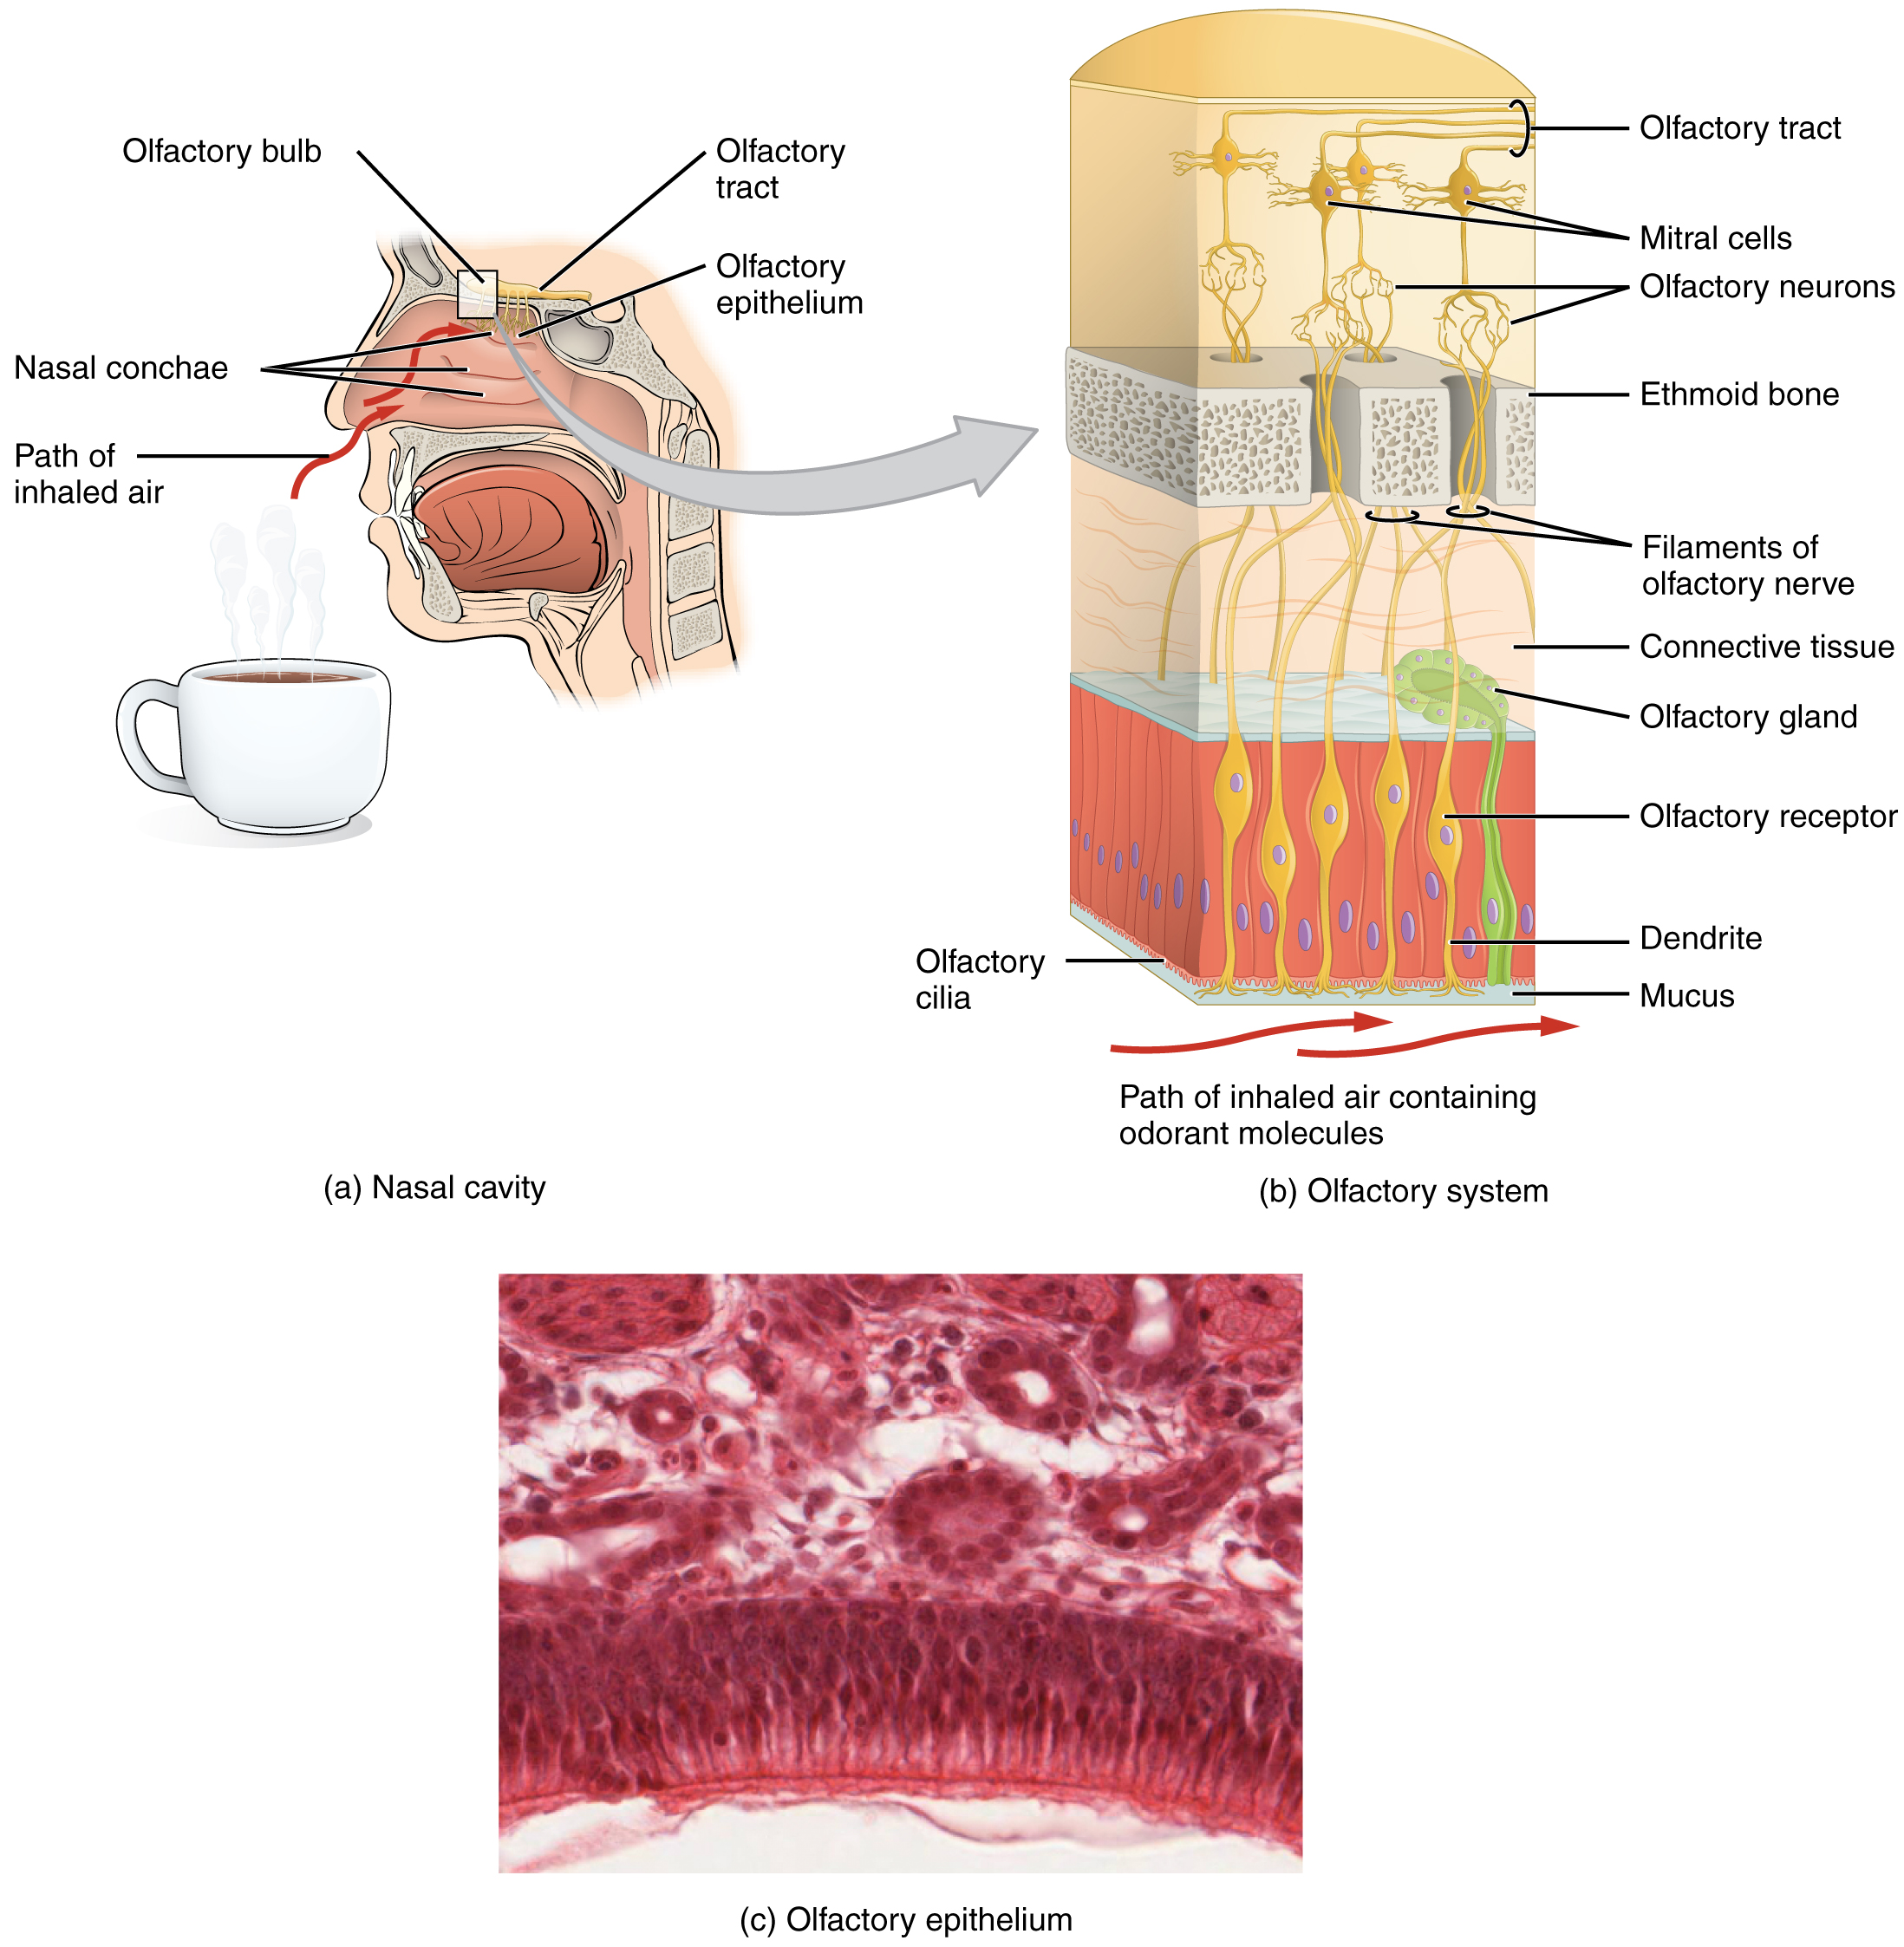 The top left panel of this image shows the side view of a person's face with a cup containing a beverage underneath the nose. The image shows how the aroma of the beverage passes through the nasal cavity. The top right panel shows a detailed ultrastructure of the olfactory bulb. The bottom panel shows a micrograph of the nasal cavity.